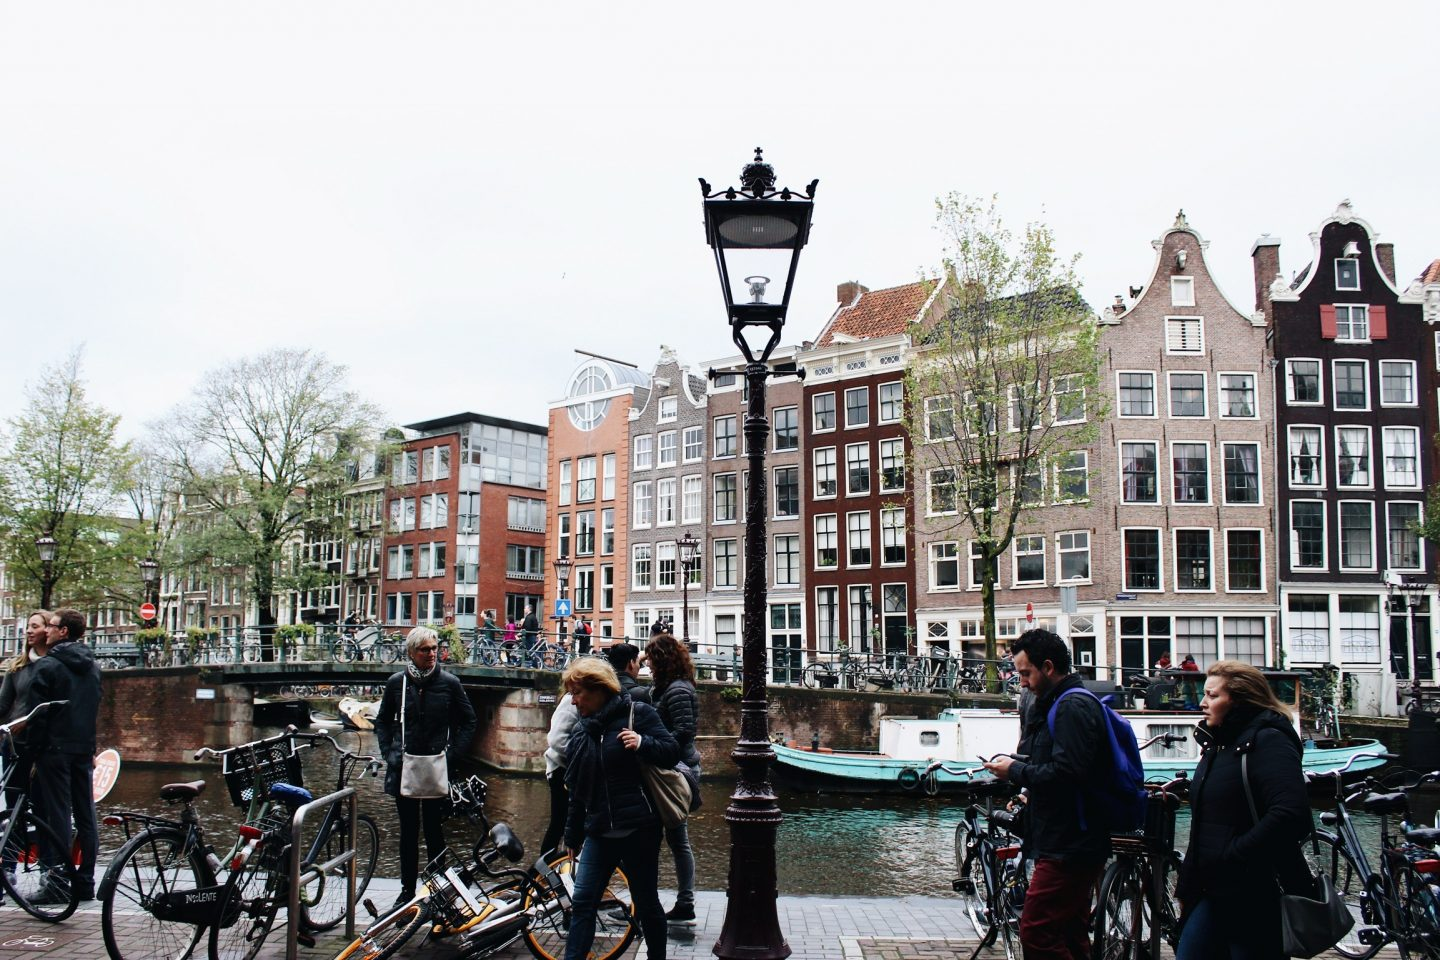 The colorful row houses and canals of Amsterdam